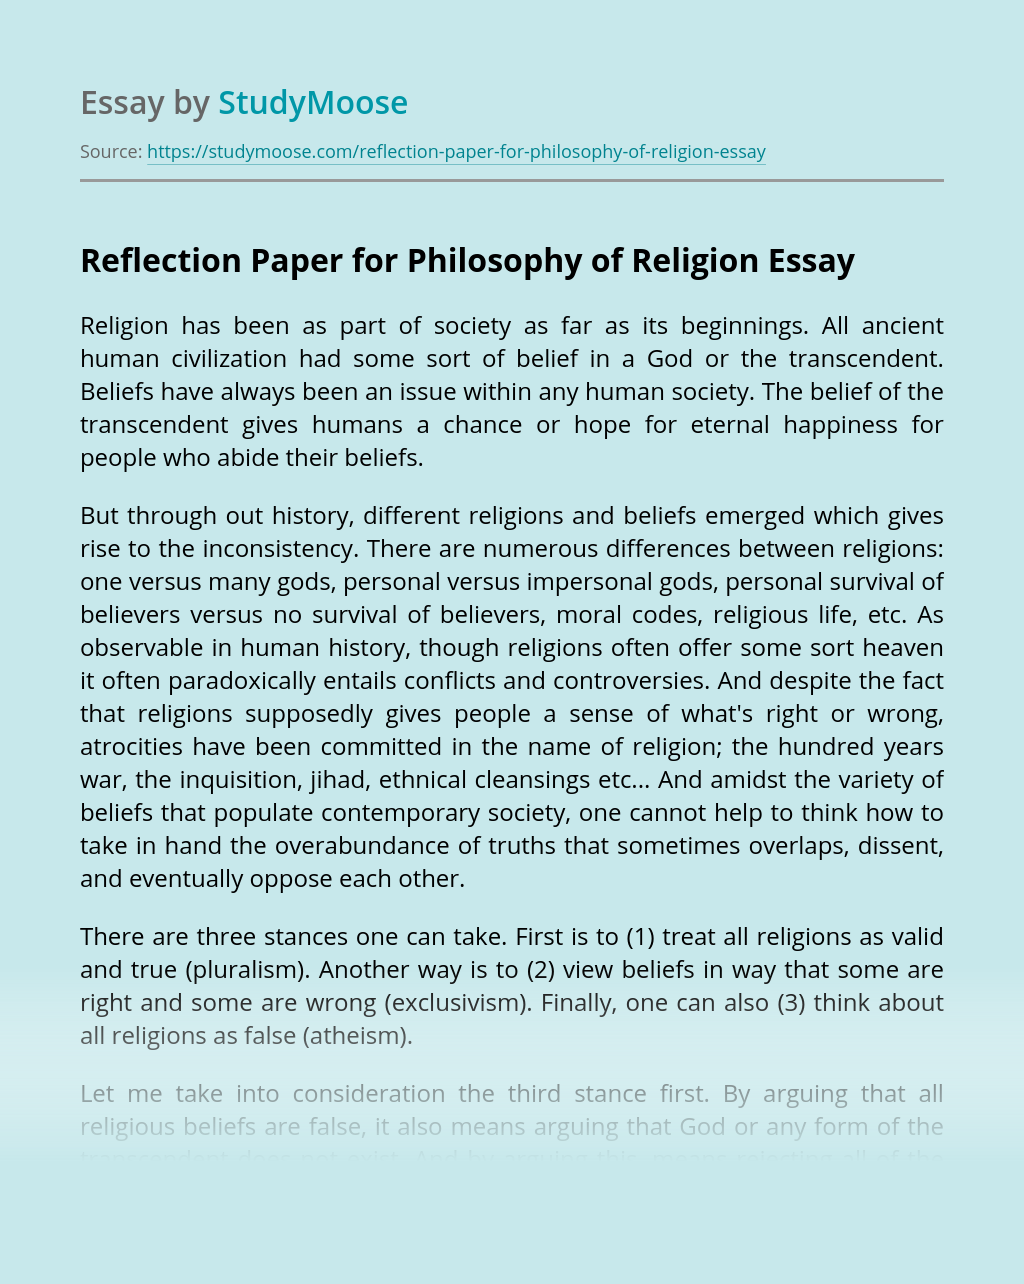 Reflection Paper for Philosophy of Religion